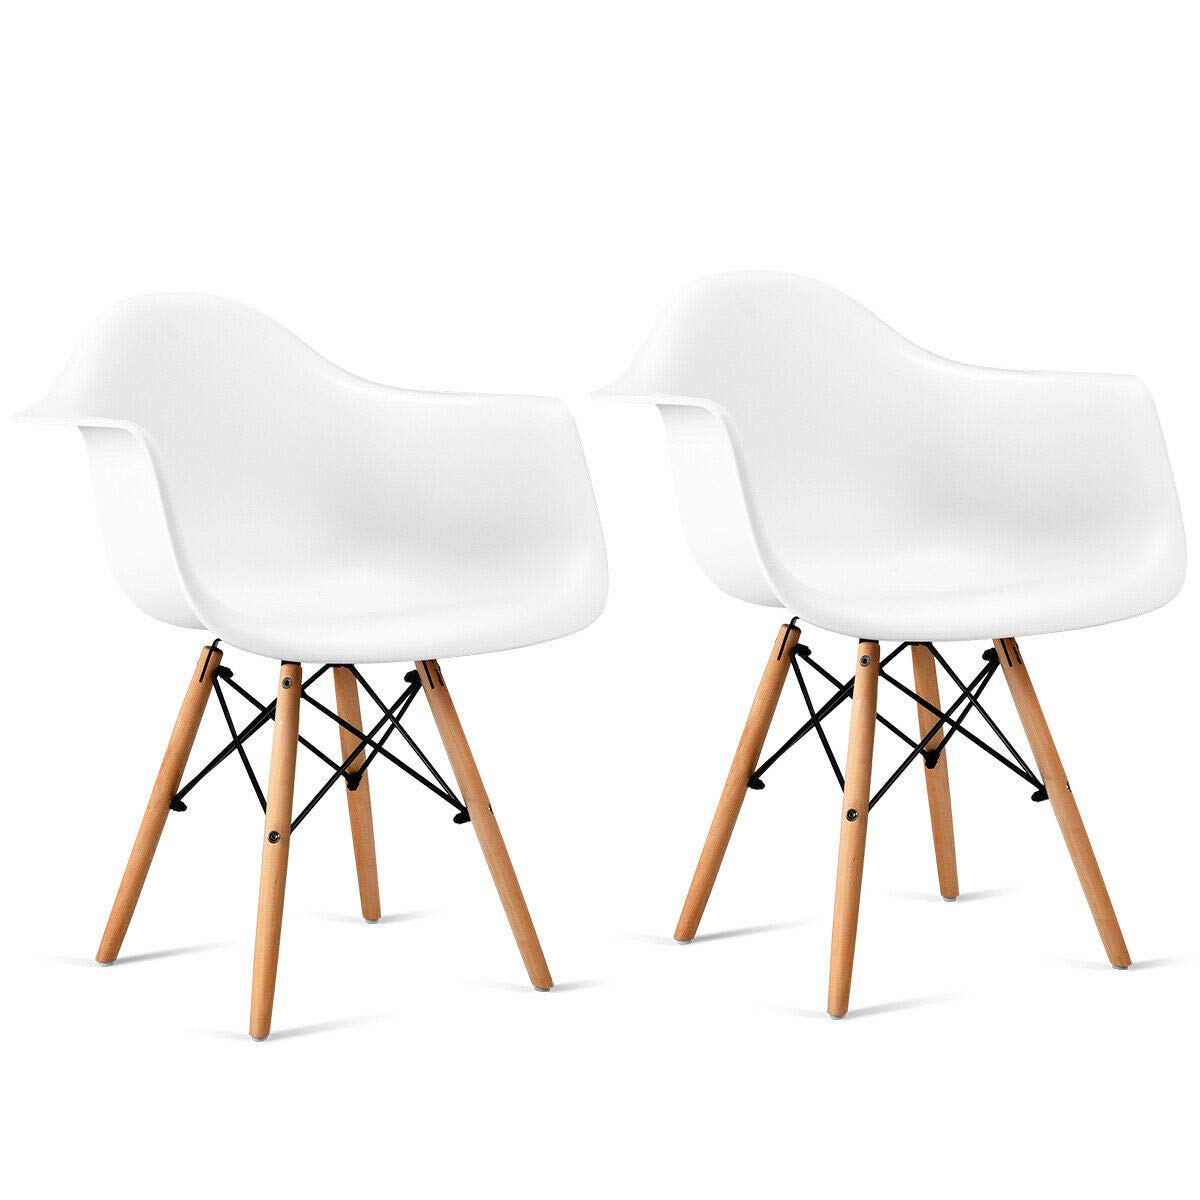 Giantex Set of 2 Modern Dining Chairs w/Natural Wood Legs, Easily Assemble Mid Century DSW Molded Plastic Shell Arm Chair for Living Room, Bedroom, Kitchen, Dining Room, Waiting Room, White by Giantex